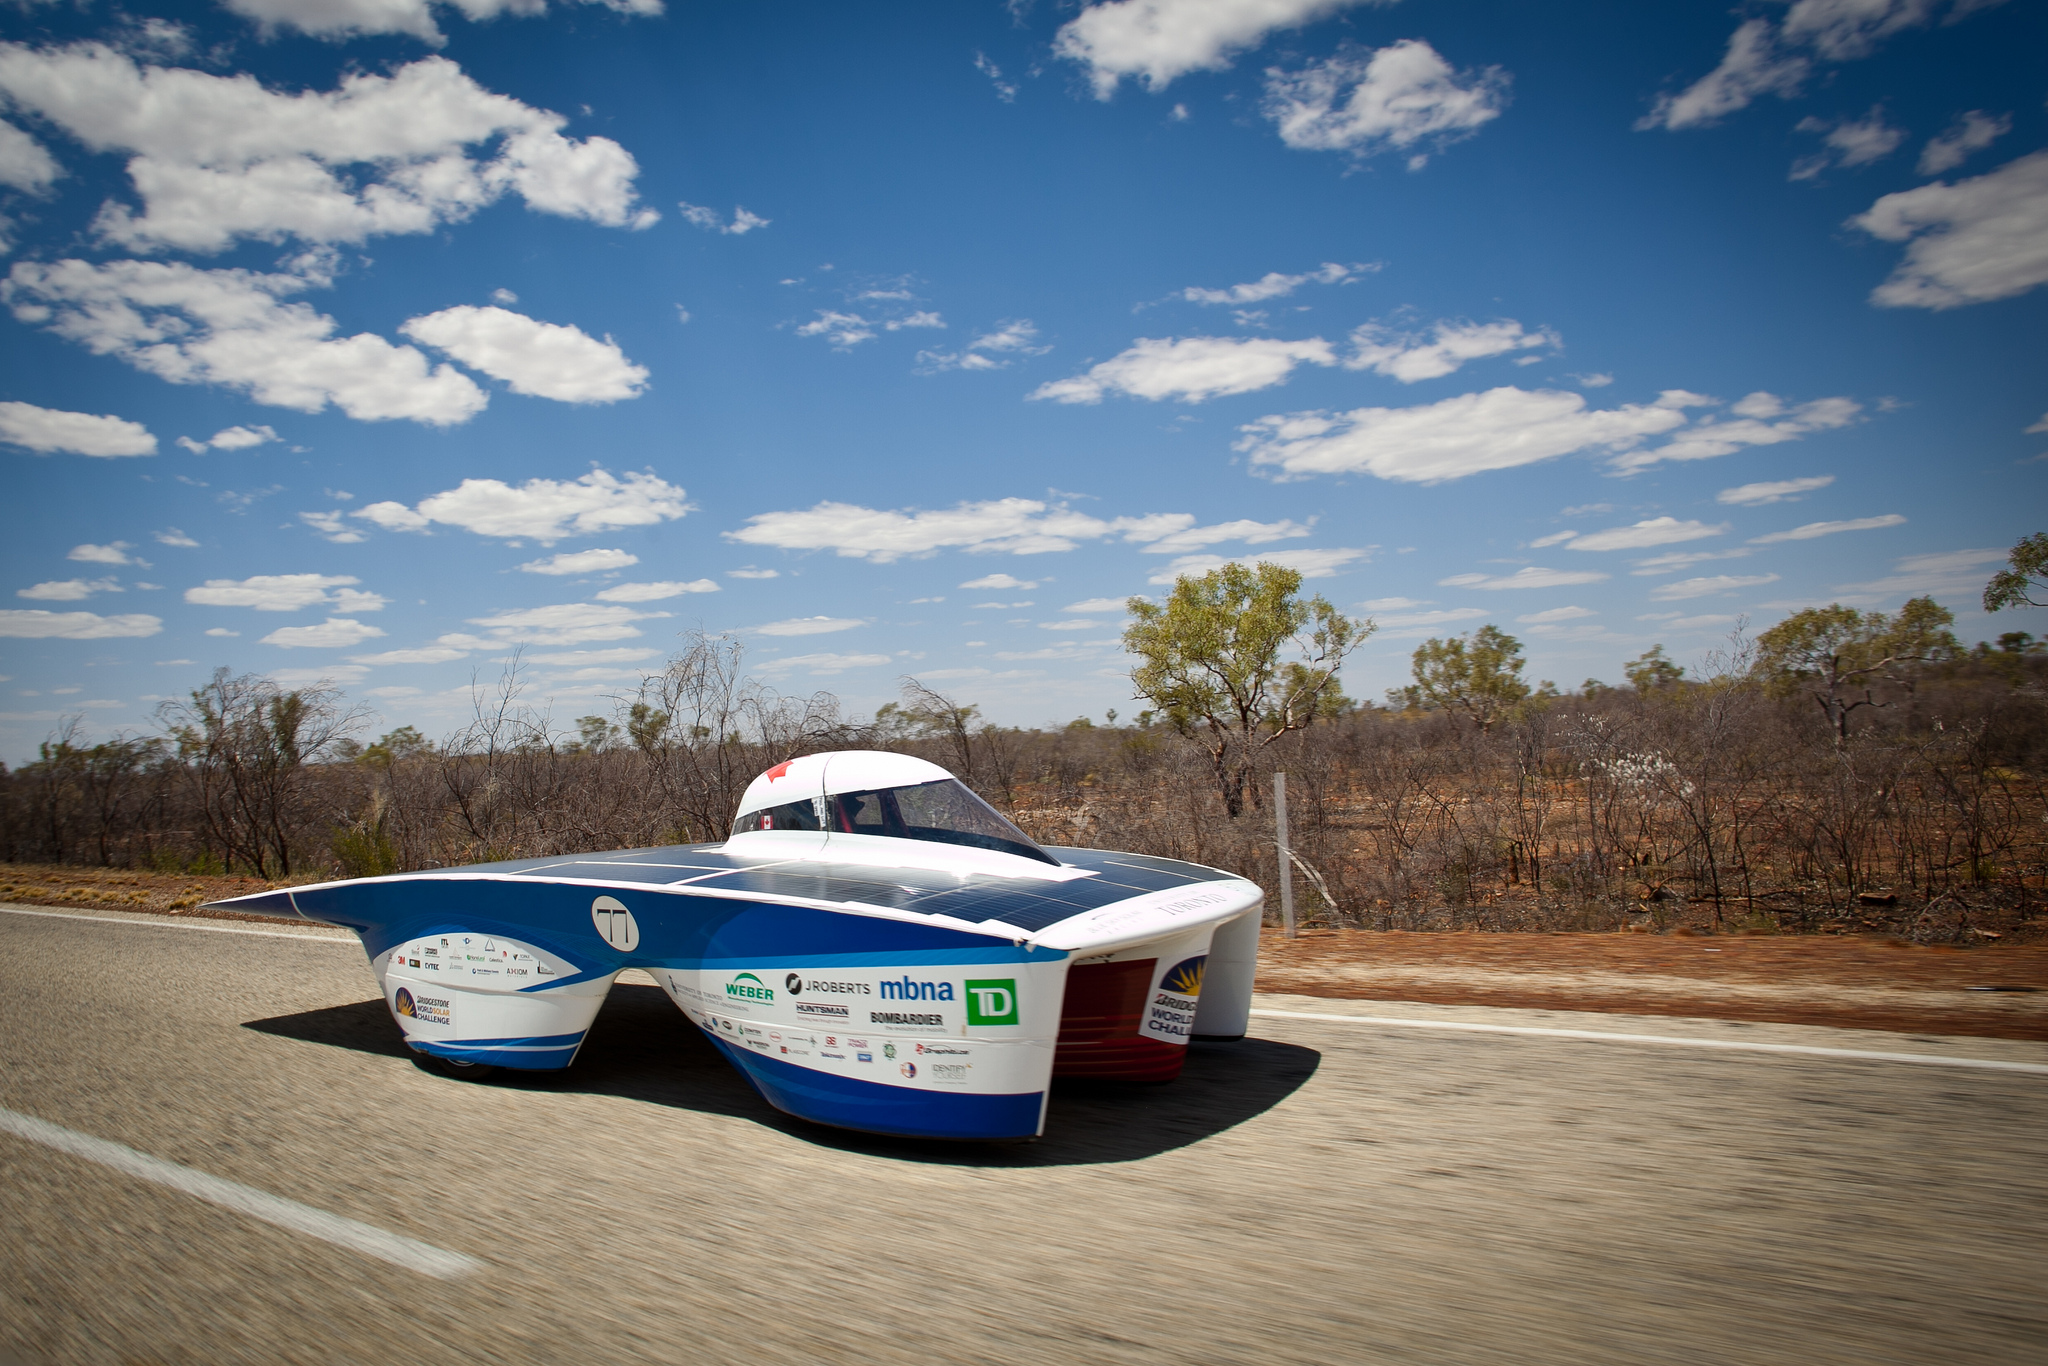 The B7 car competing in the 2013 World Solar Challenge. (via flickr.com/photos/blueskysolar)